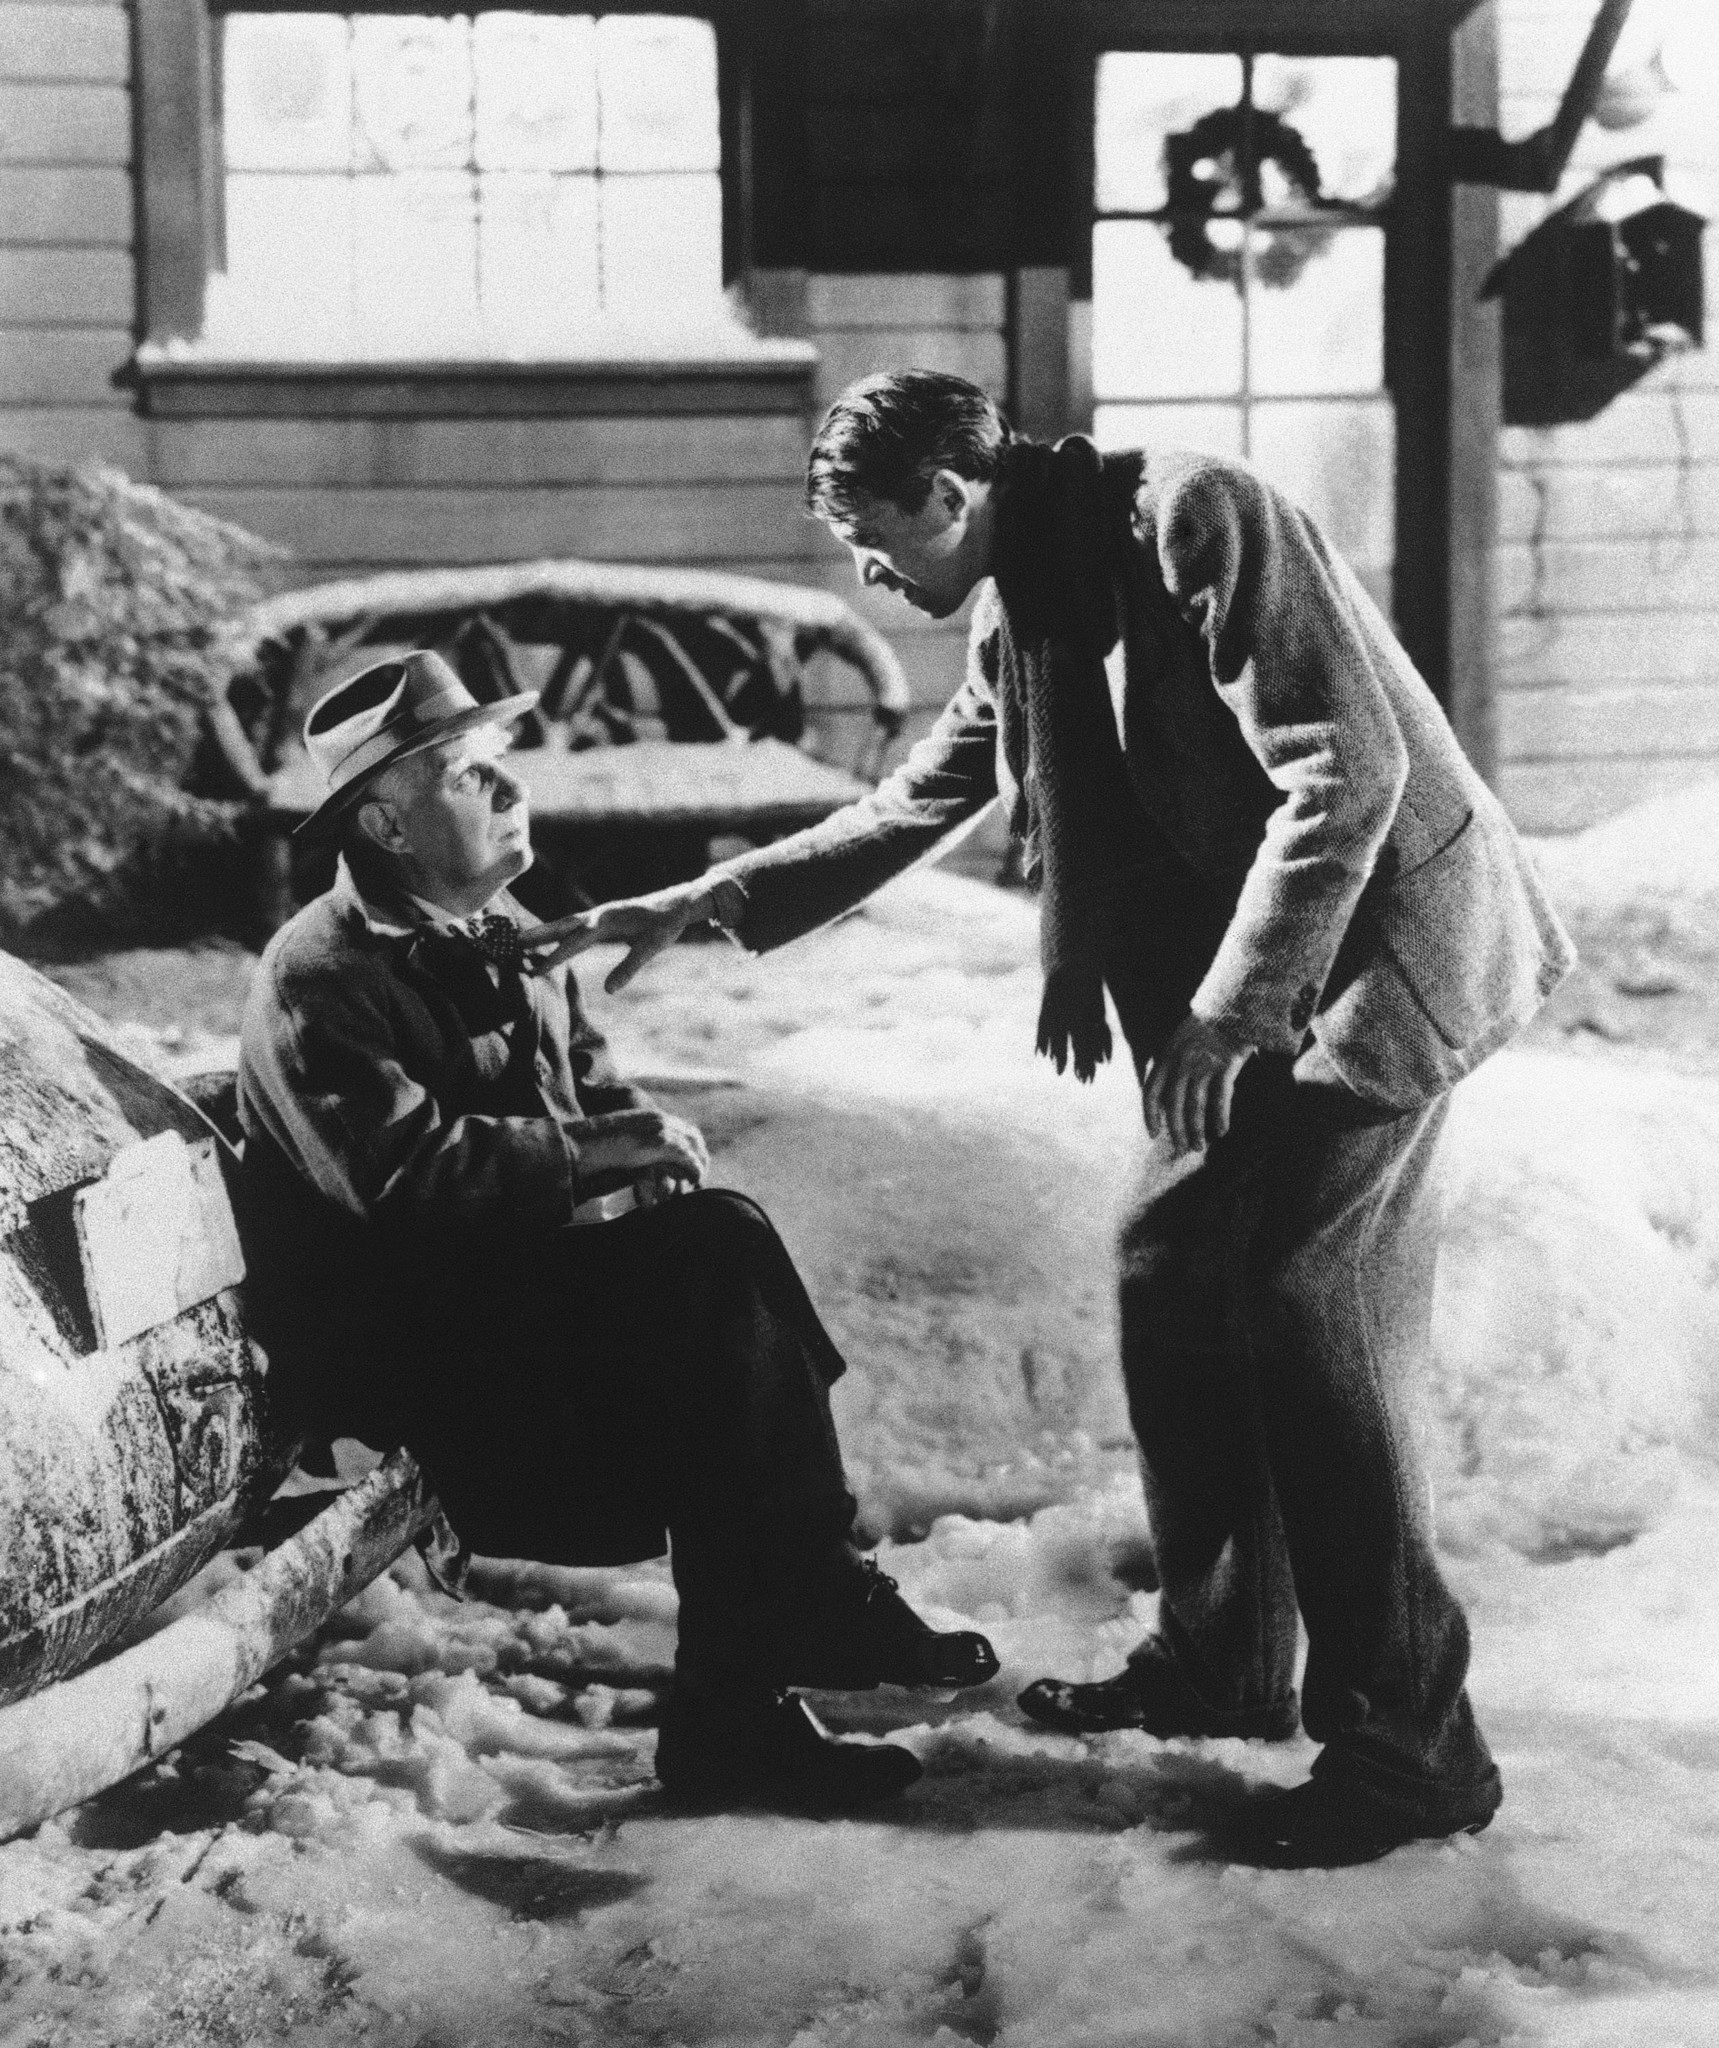 If we\'re in Pottersville, is there still hope for a wonderful life ...